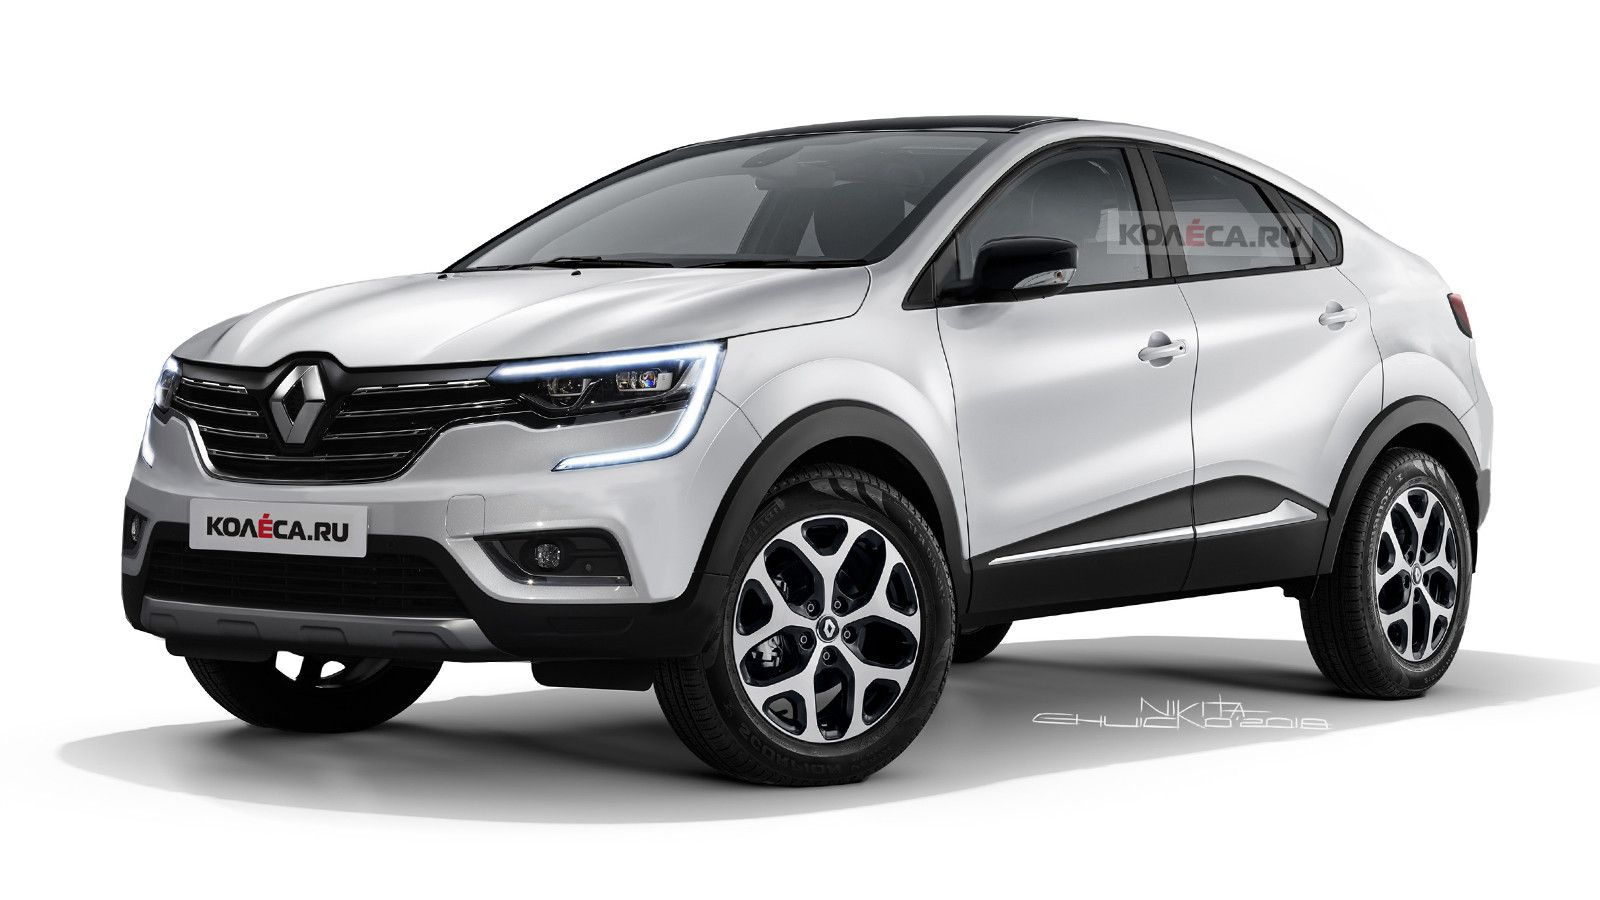 37 All New 2020 Renault Megane SUV Performance and New Engine